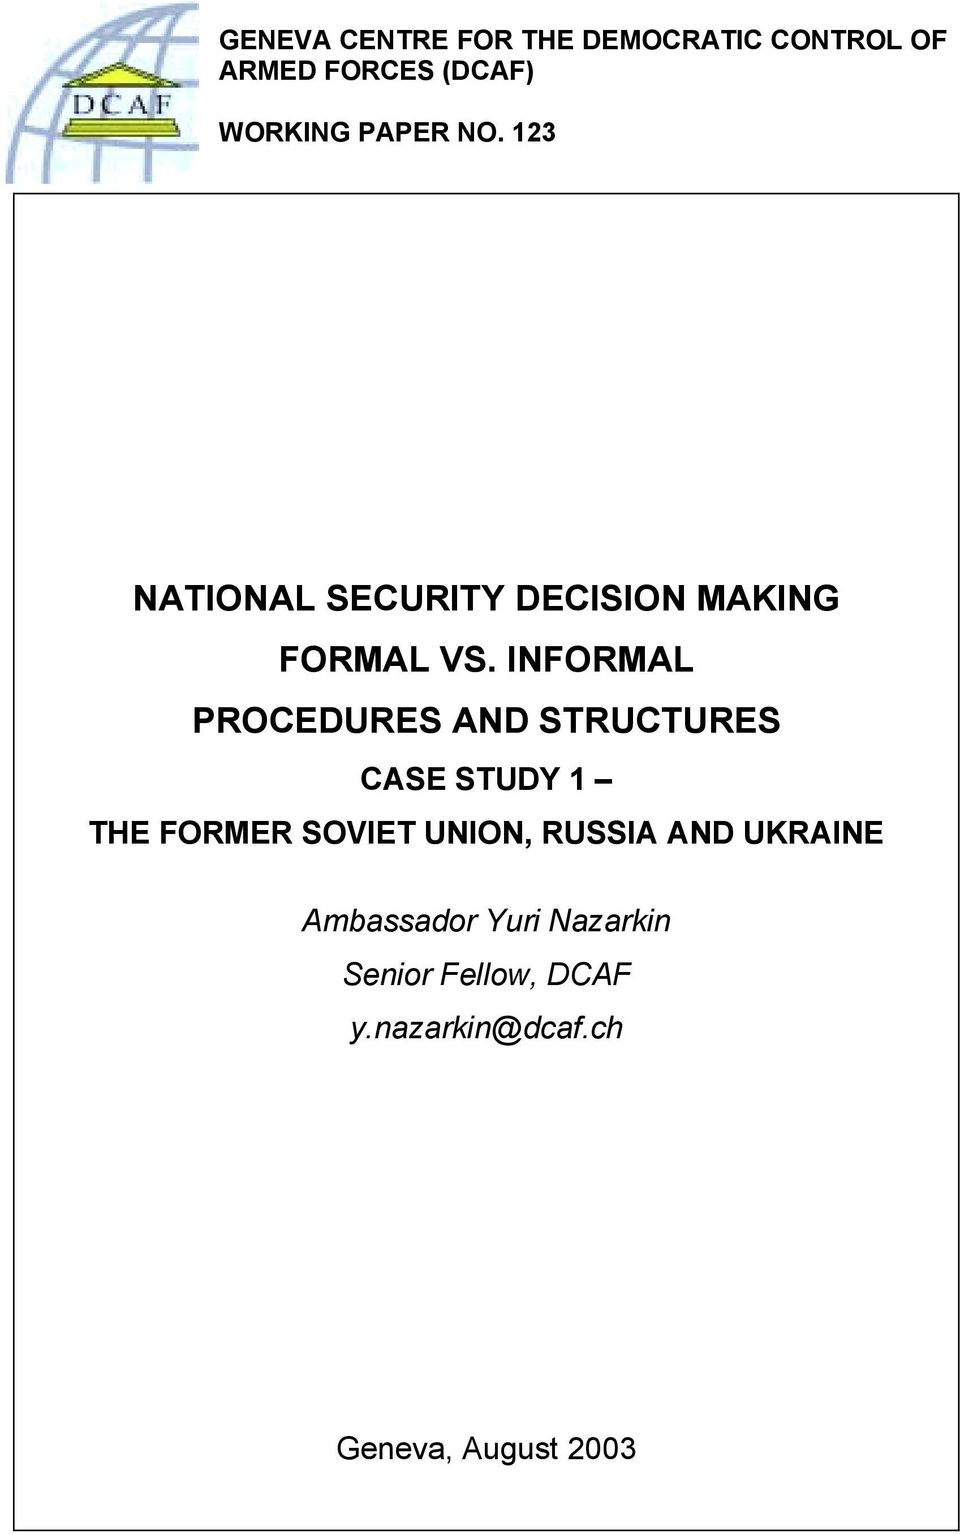 INFORMAL PROCEDURES AND STRUCTURES CASE STUDY 1 THE FORMER SOVIET UNION,